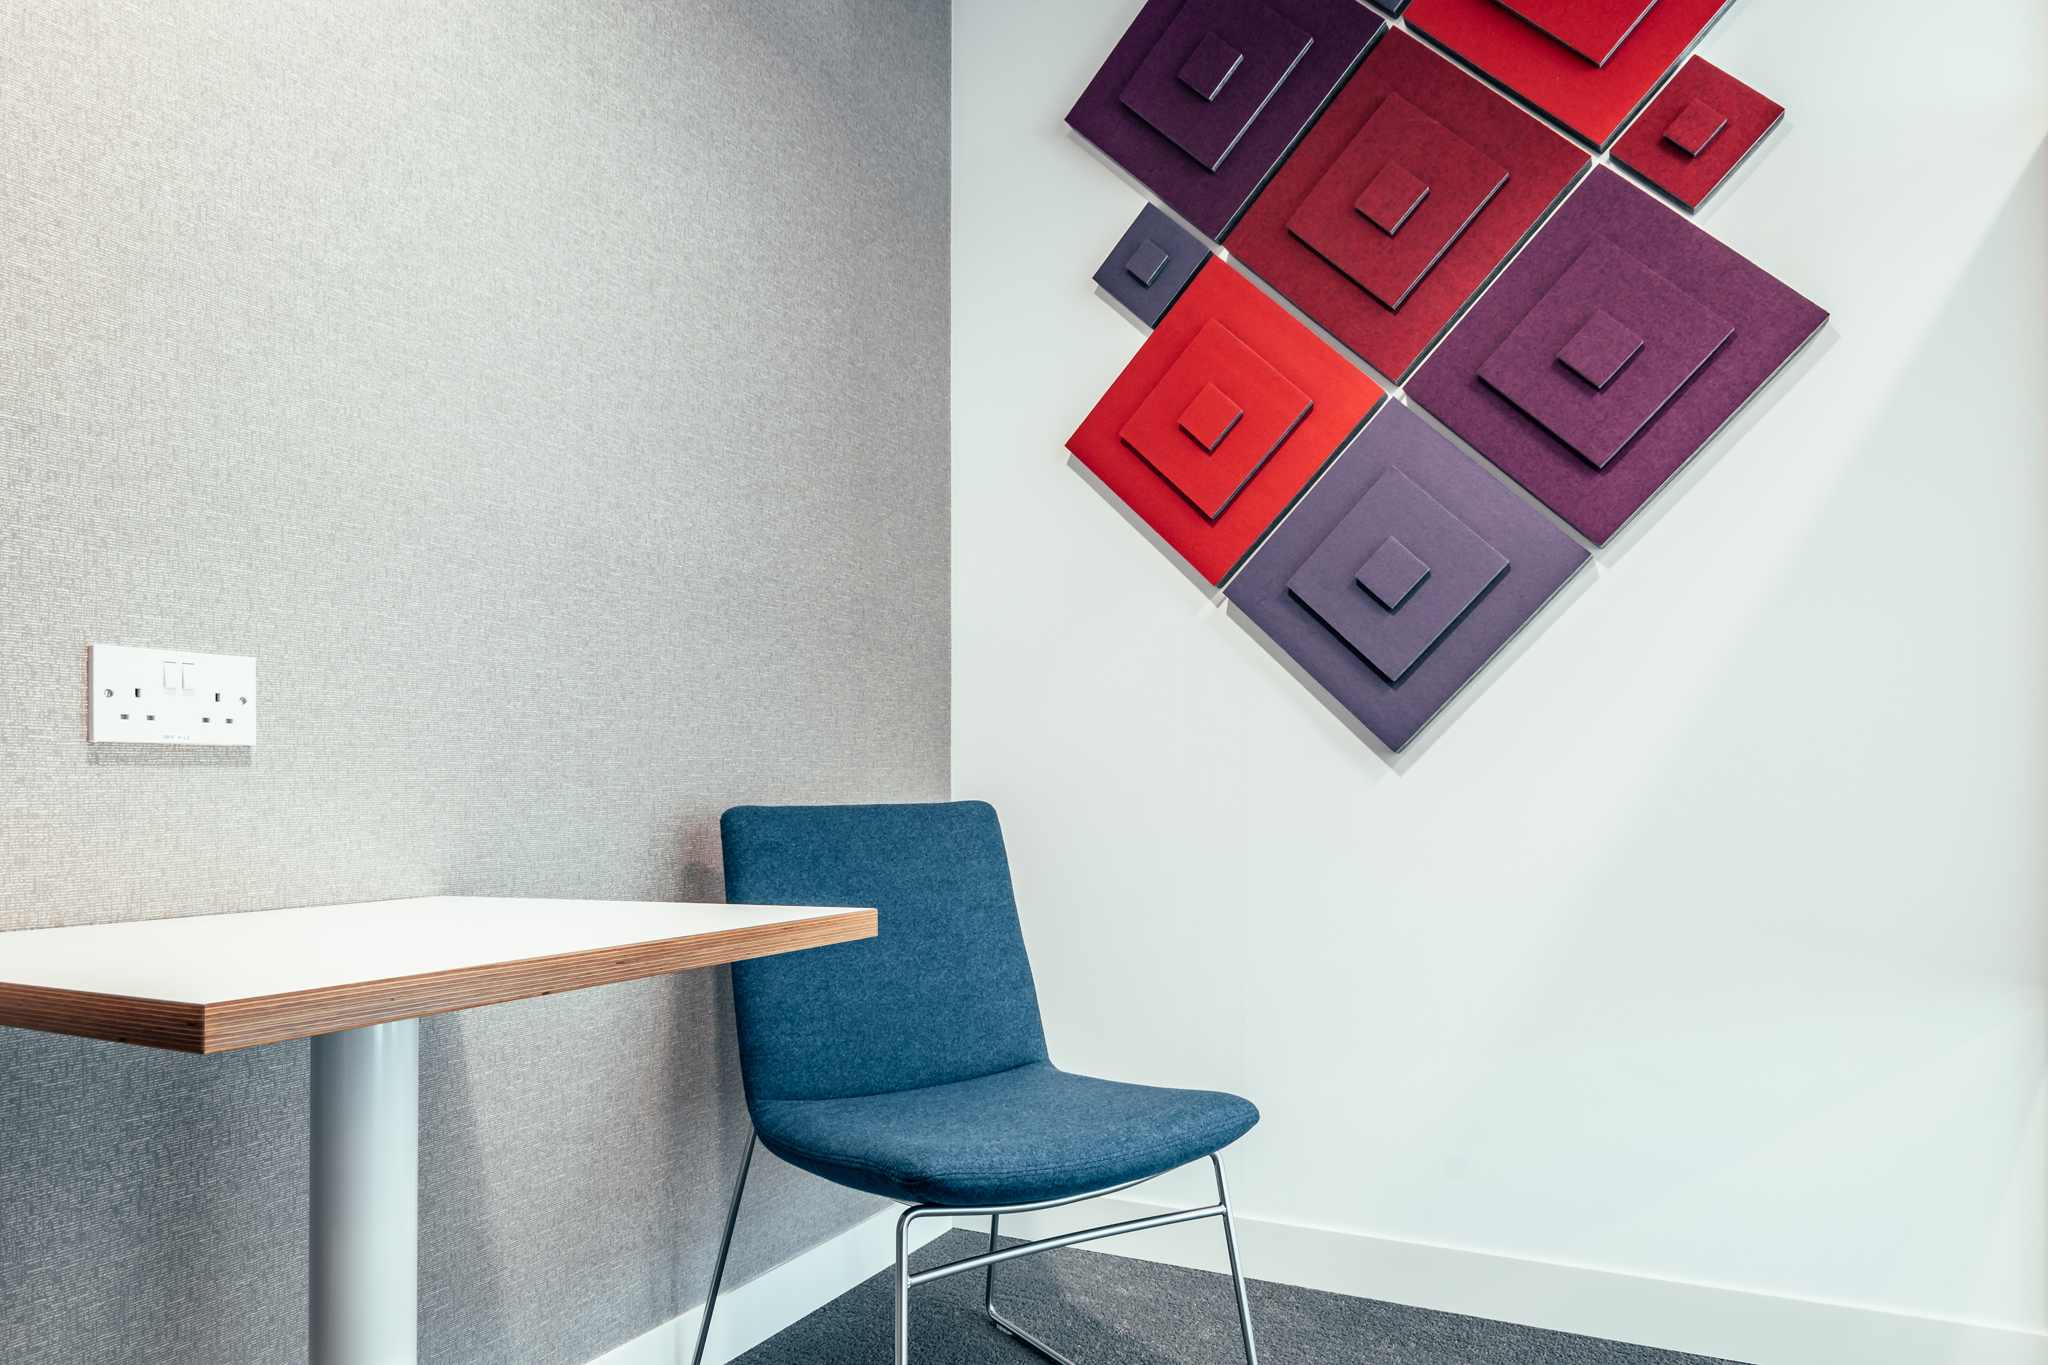 Acoustic Panels for FinancialForce